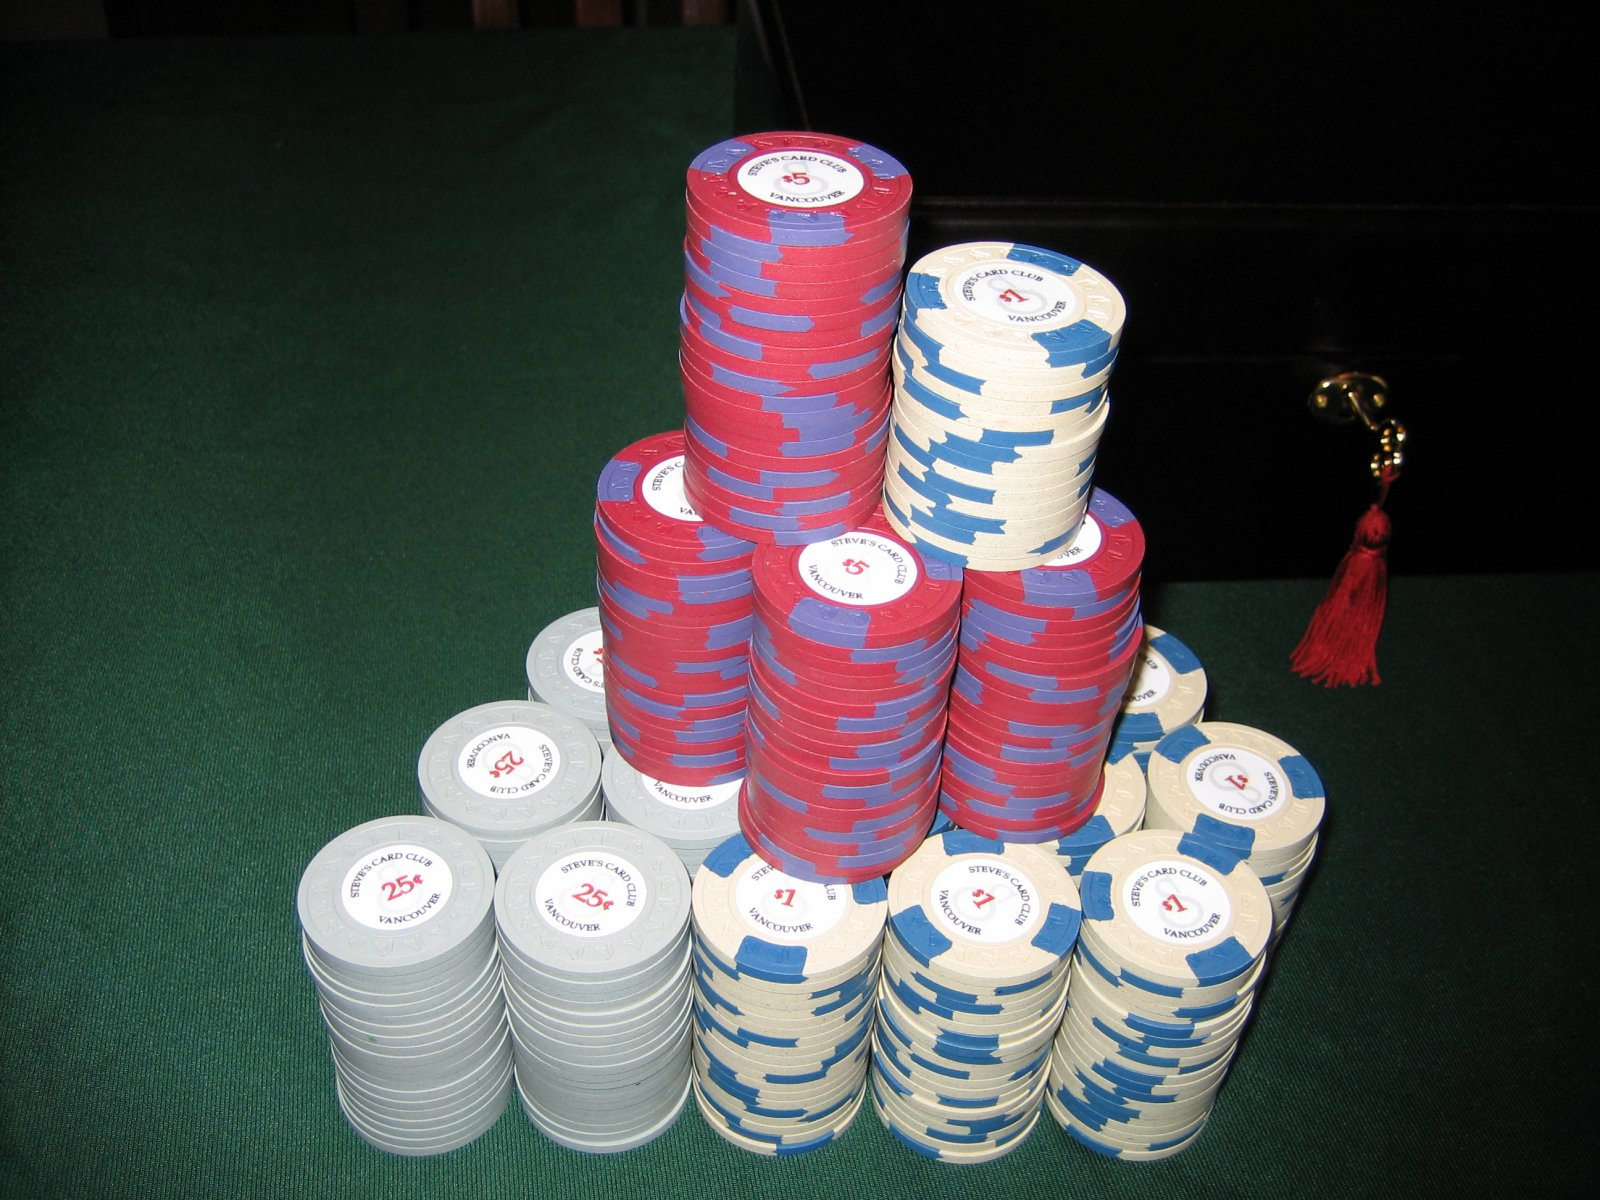 Home Poker Tour - Steve's Home Poker Blog